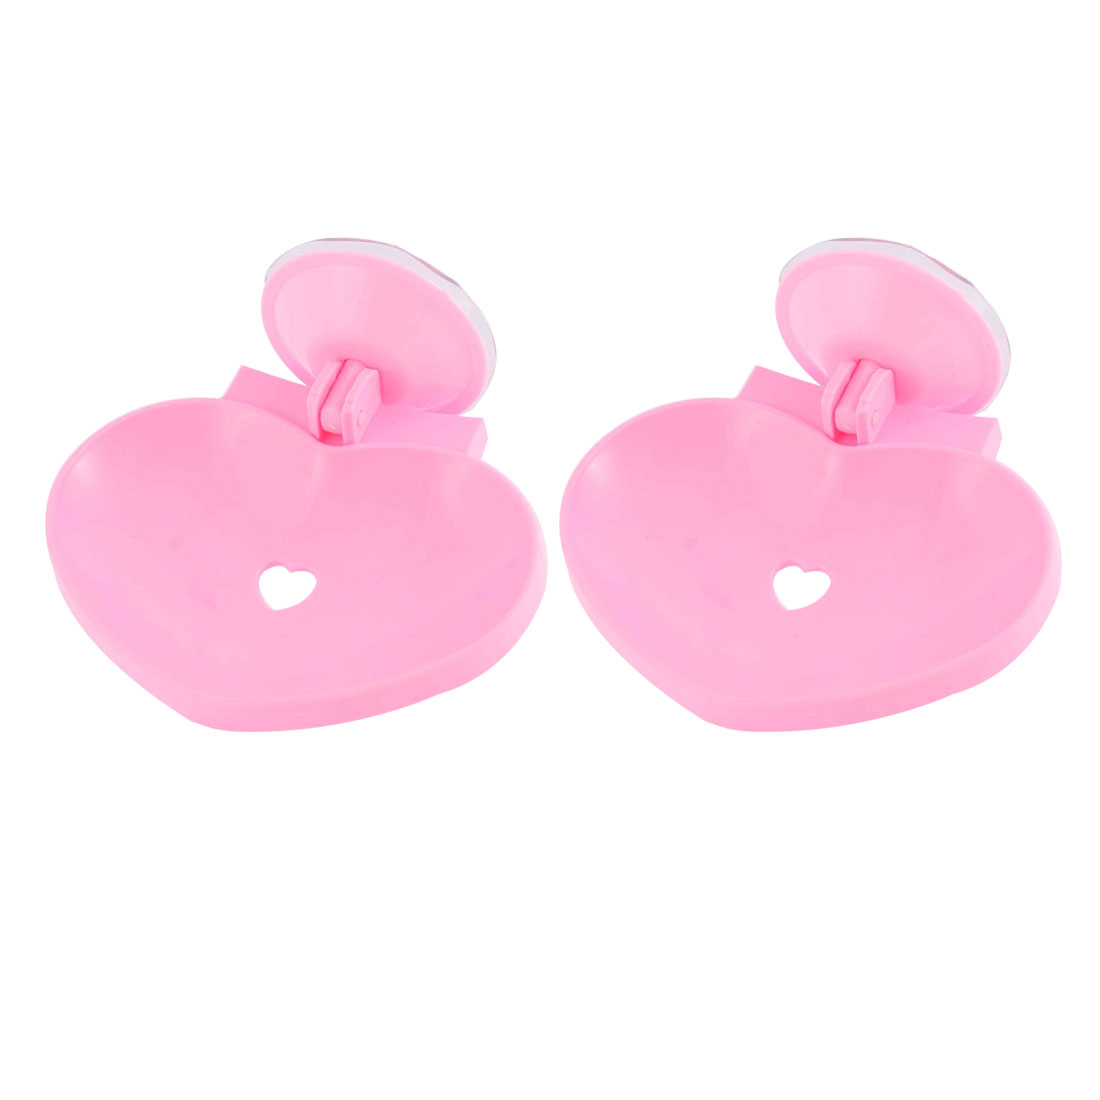 Household Plastic Heart Shape Hollow Out Suction Cup Soap Holder Pink 2 Pcs